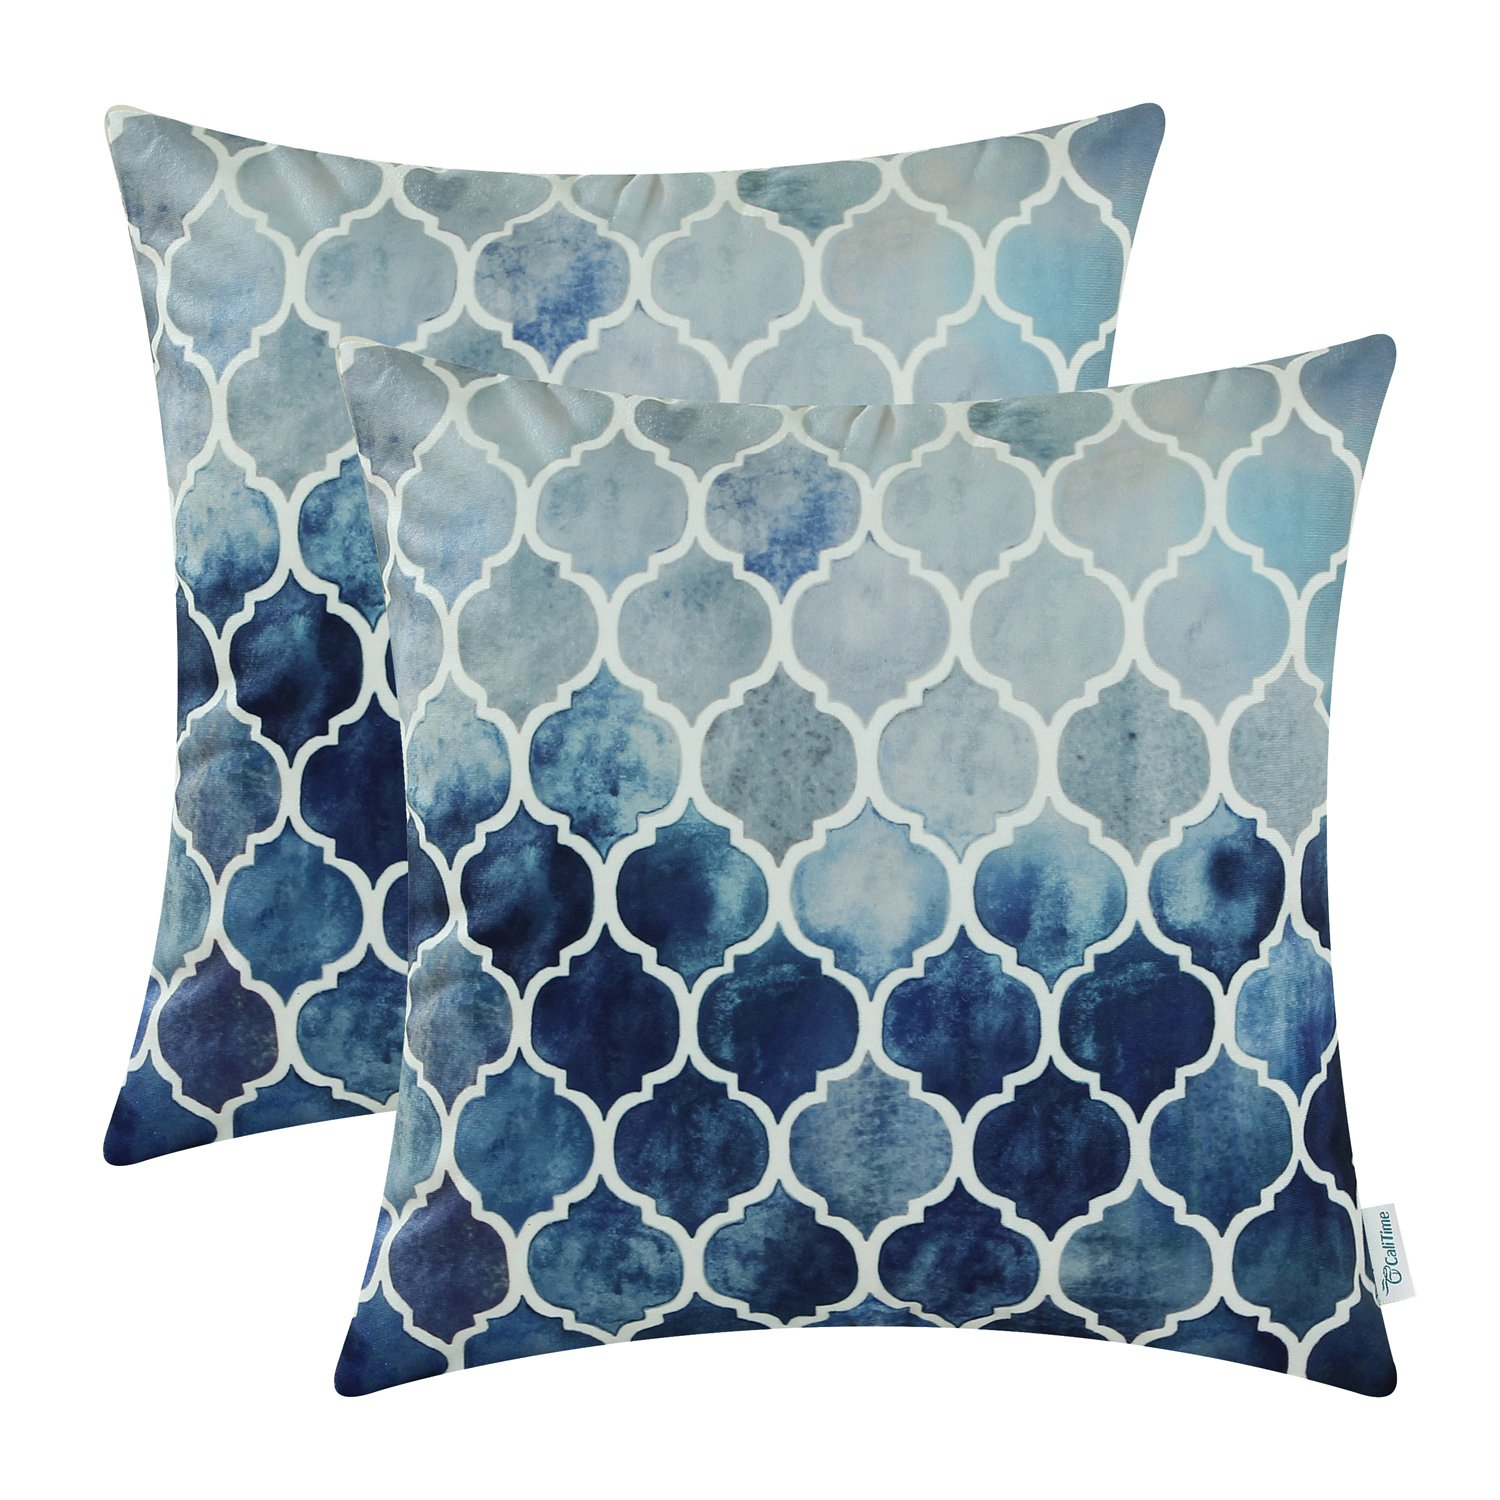 CaliTime Pack of 2 Cozy Throw Pillow Cases Covers Couch Bed Sofa Manual Hand Painted Colorful Geometric Trellis Chain Print 18 X 18 Inches Main Grey Navy Blue